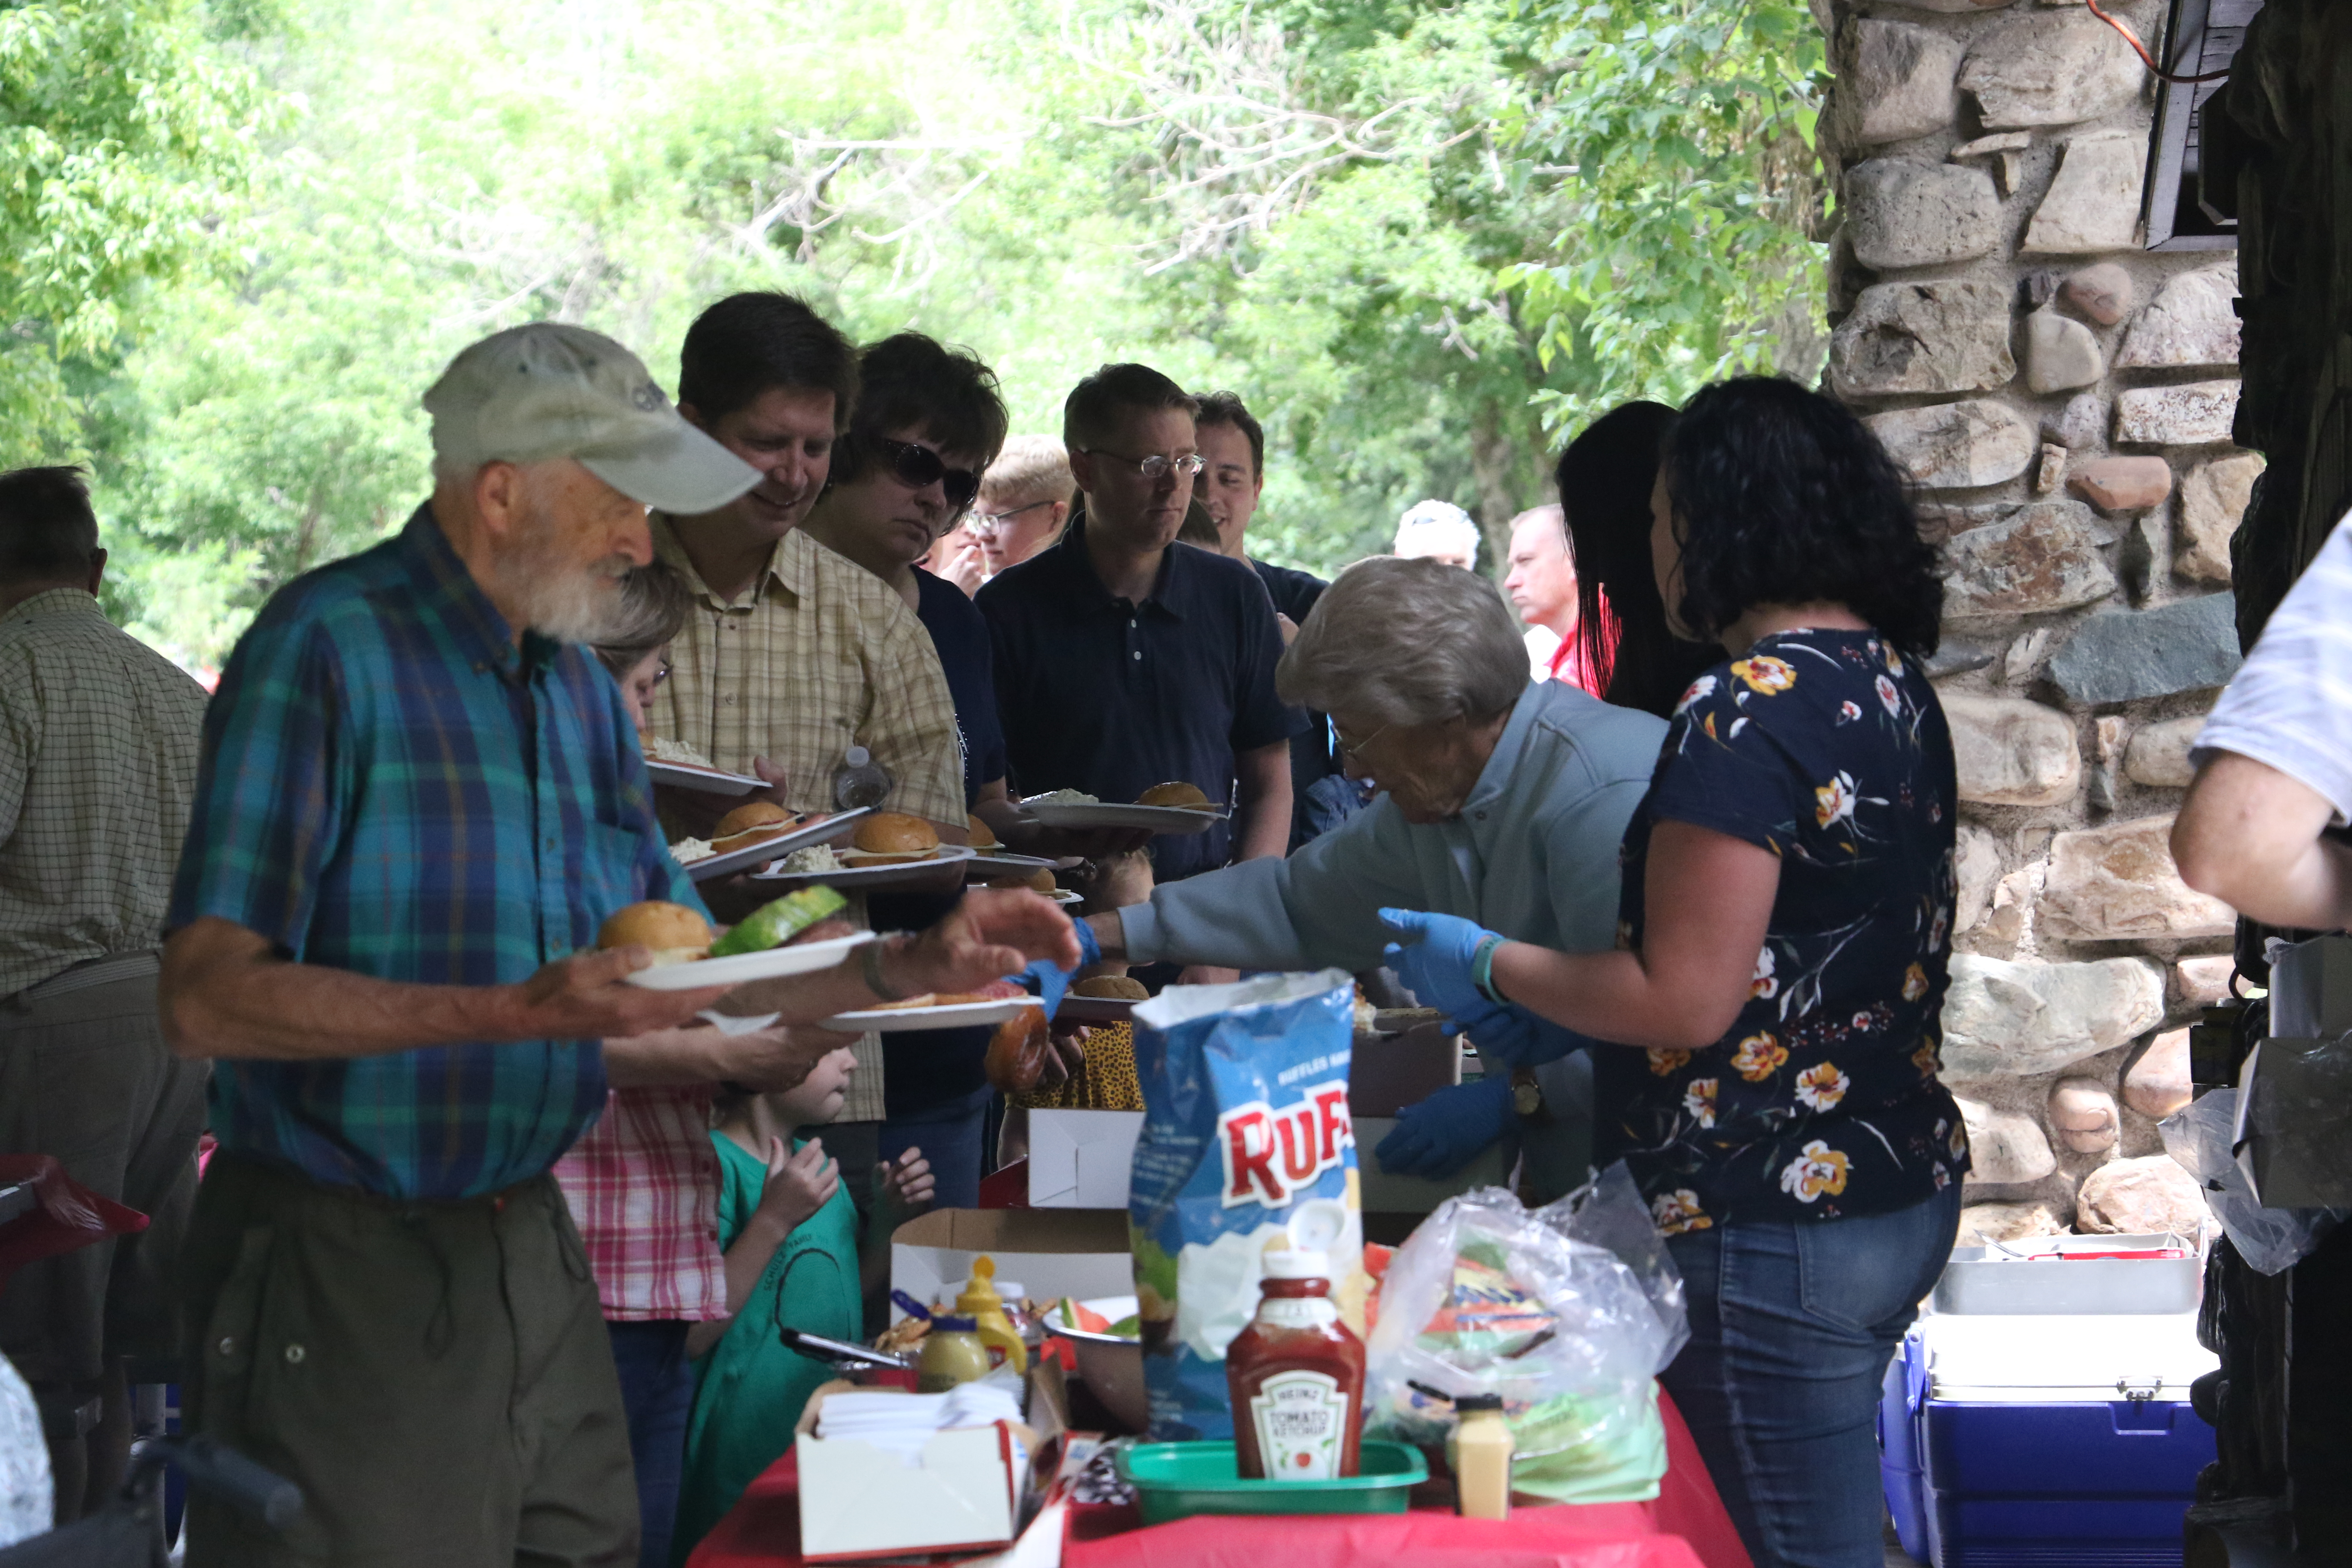 Members of the German Speaking Ward join family and friends at the ward's annual ward picnic at Washington Terrace Park in Parley's Canyon, Utah, on July 13, 2019.